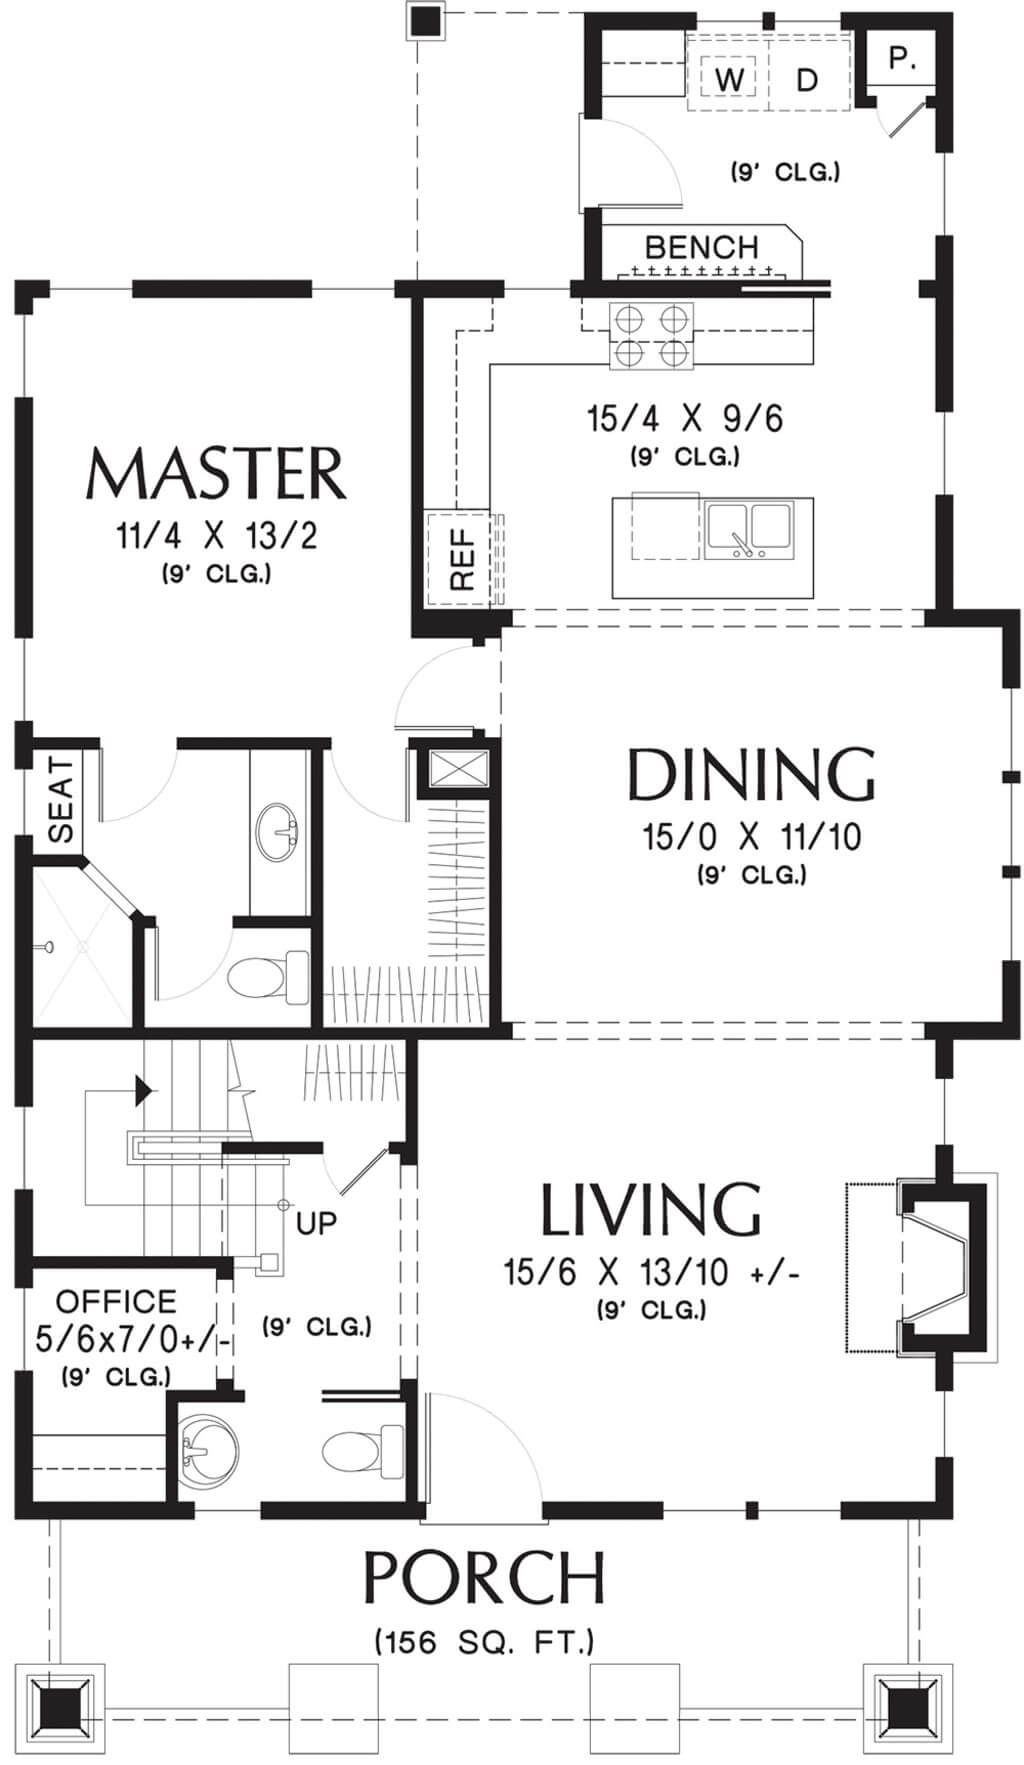 Top 50 Amazing House Plan Ideas Engineering Discoveries In 2020 Bungalow House Plans Bungalow Style House Plans New House Plans